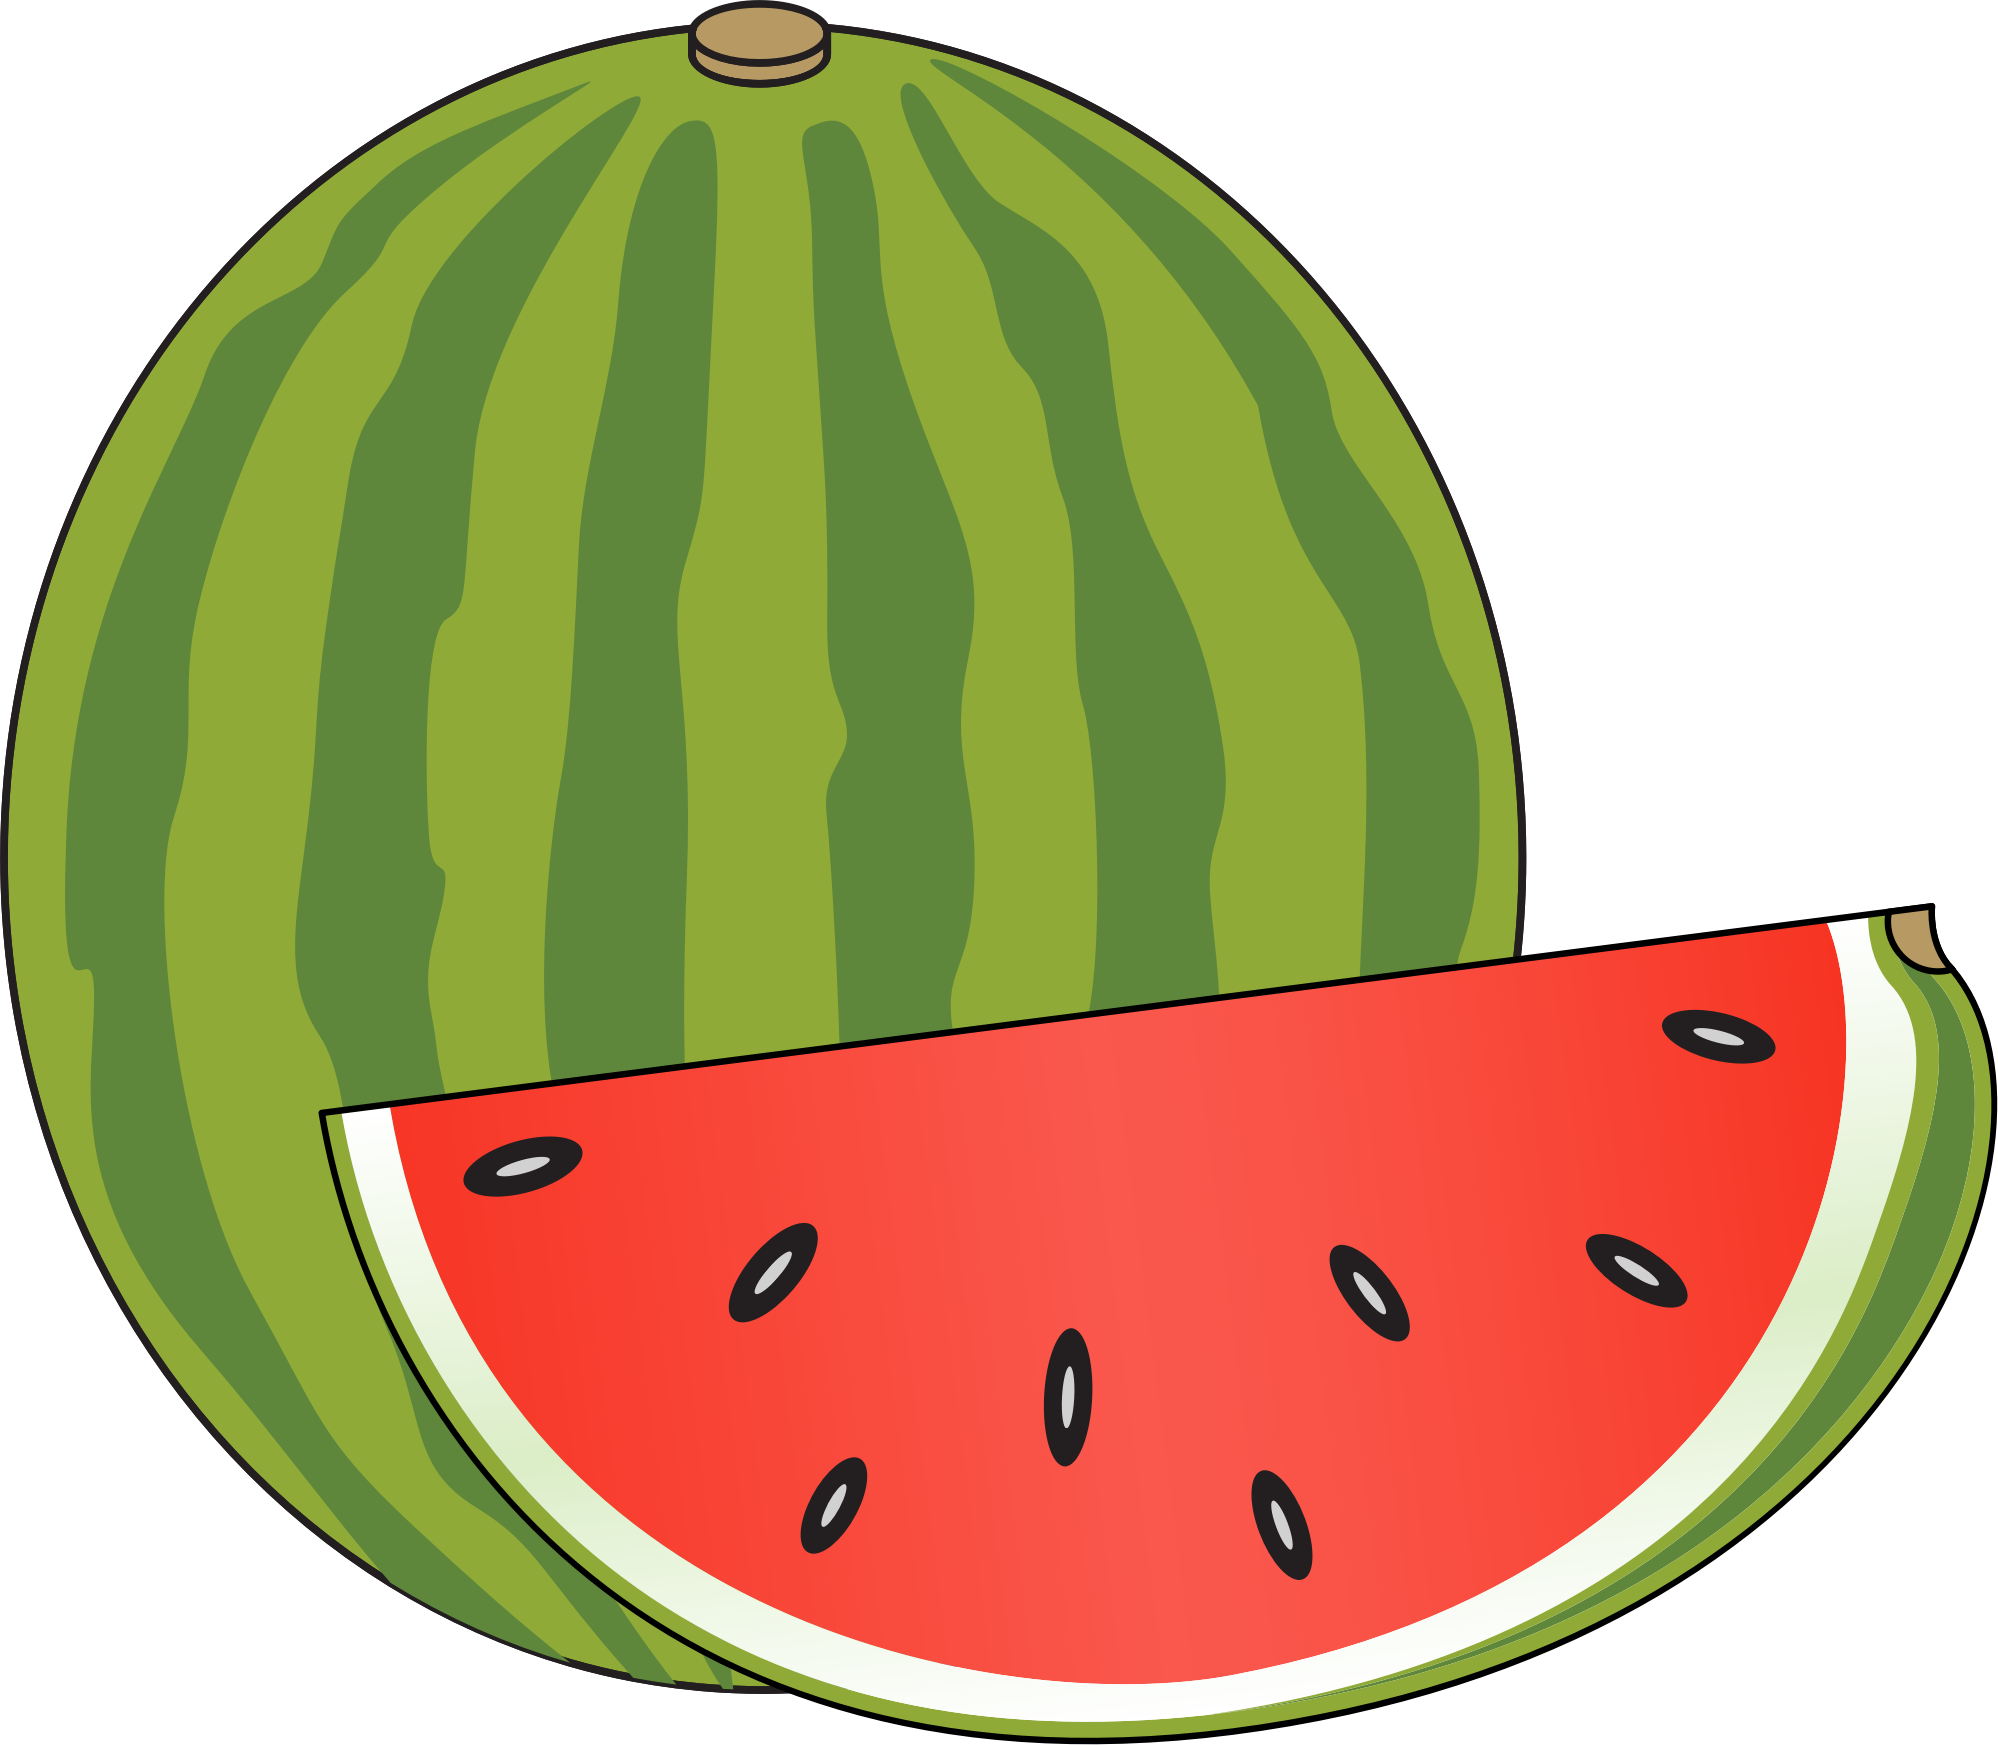 Watermelon by casino